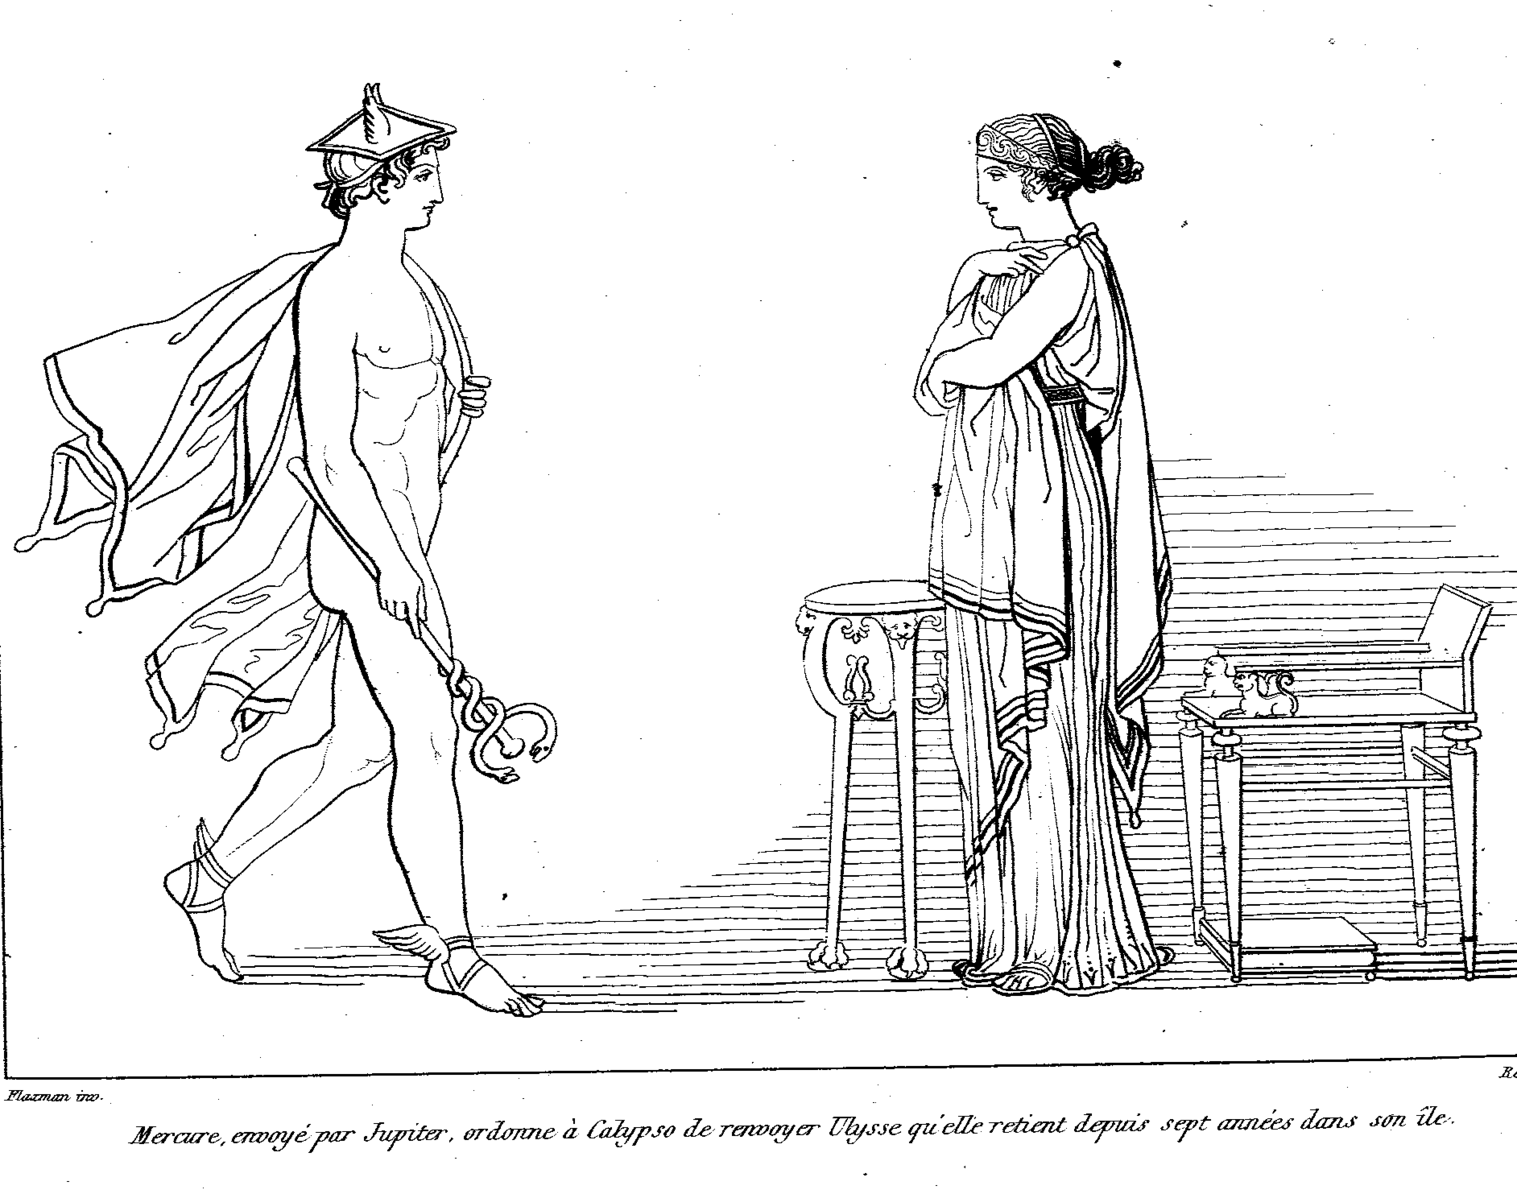 Hermes Orders Calypso To Release Odysseus A 3 Drawings Coloring